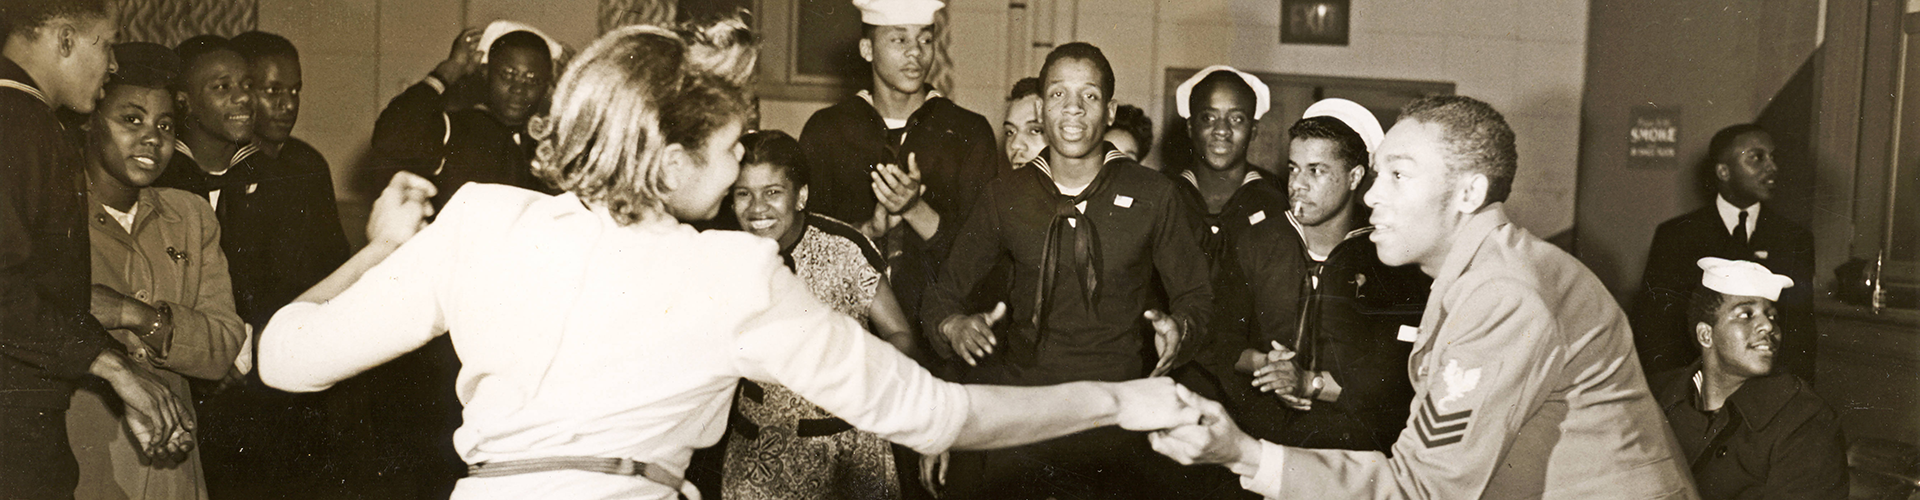 Historic image: couple dancing at Smith St. USO